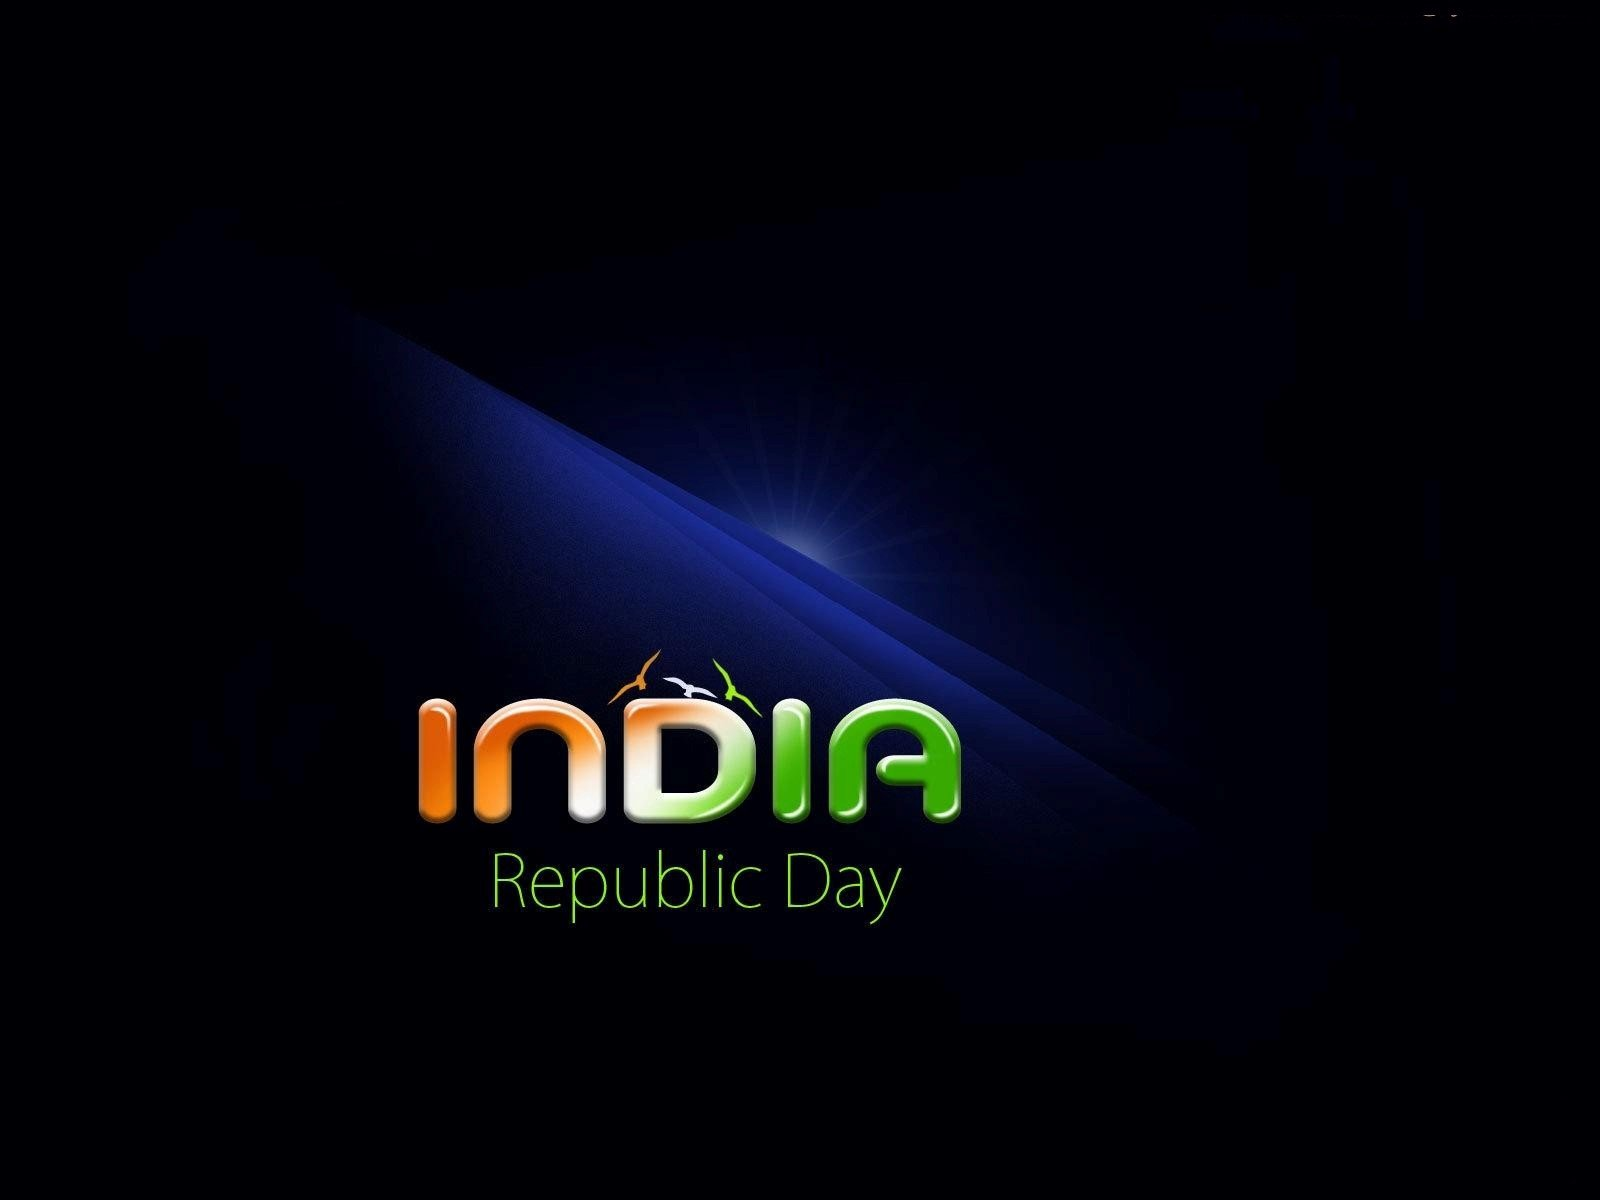 India Republic Day 2014 Background Wallpapers HD Wallpapers 1600x1200